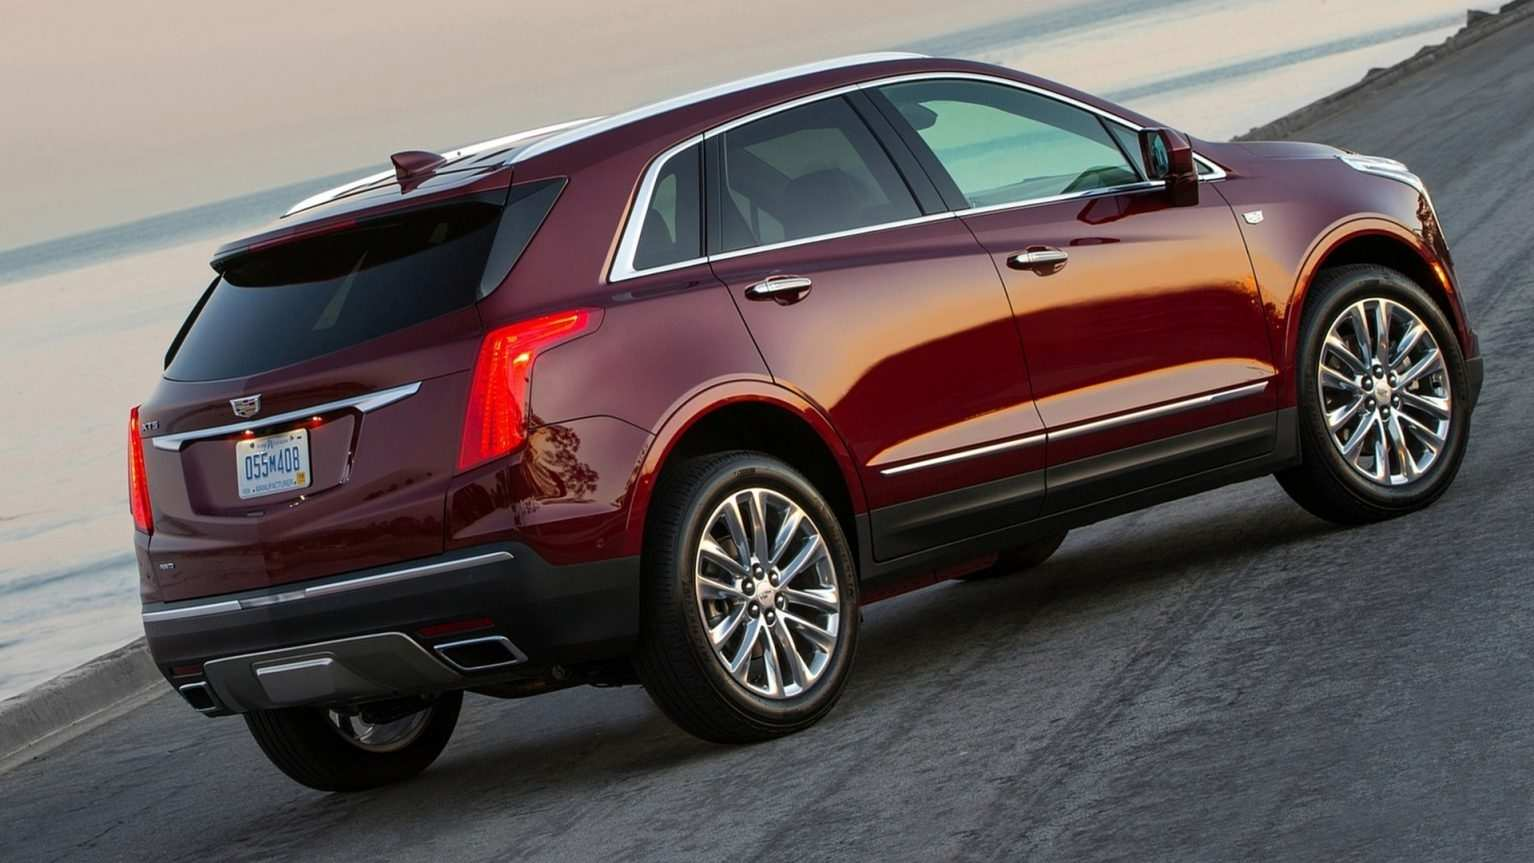 72 Great The Cadillac 2019 Srx Review And Release Date Spesification by The Cadillac 2019 Srx Review And Release Date